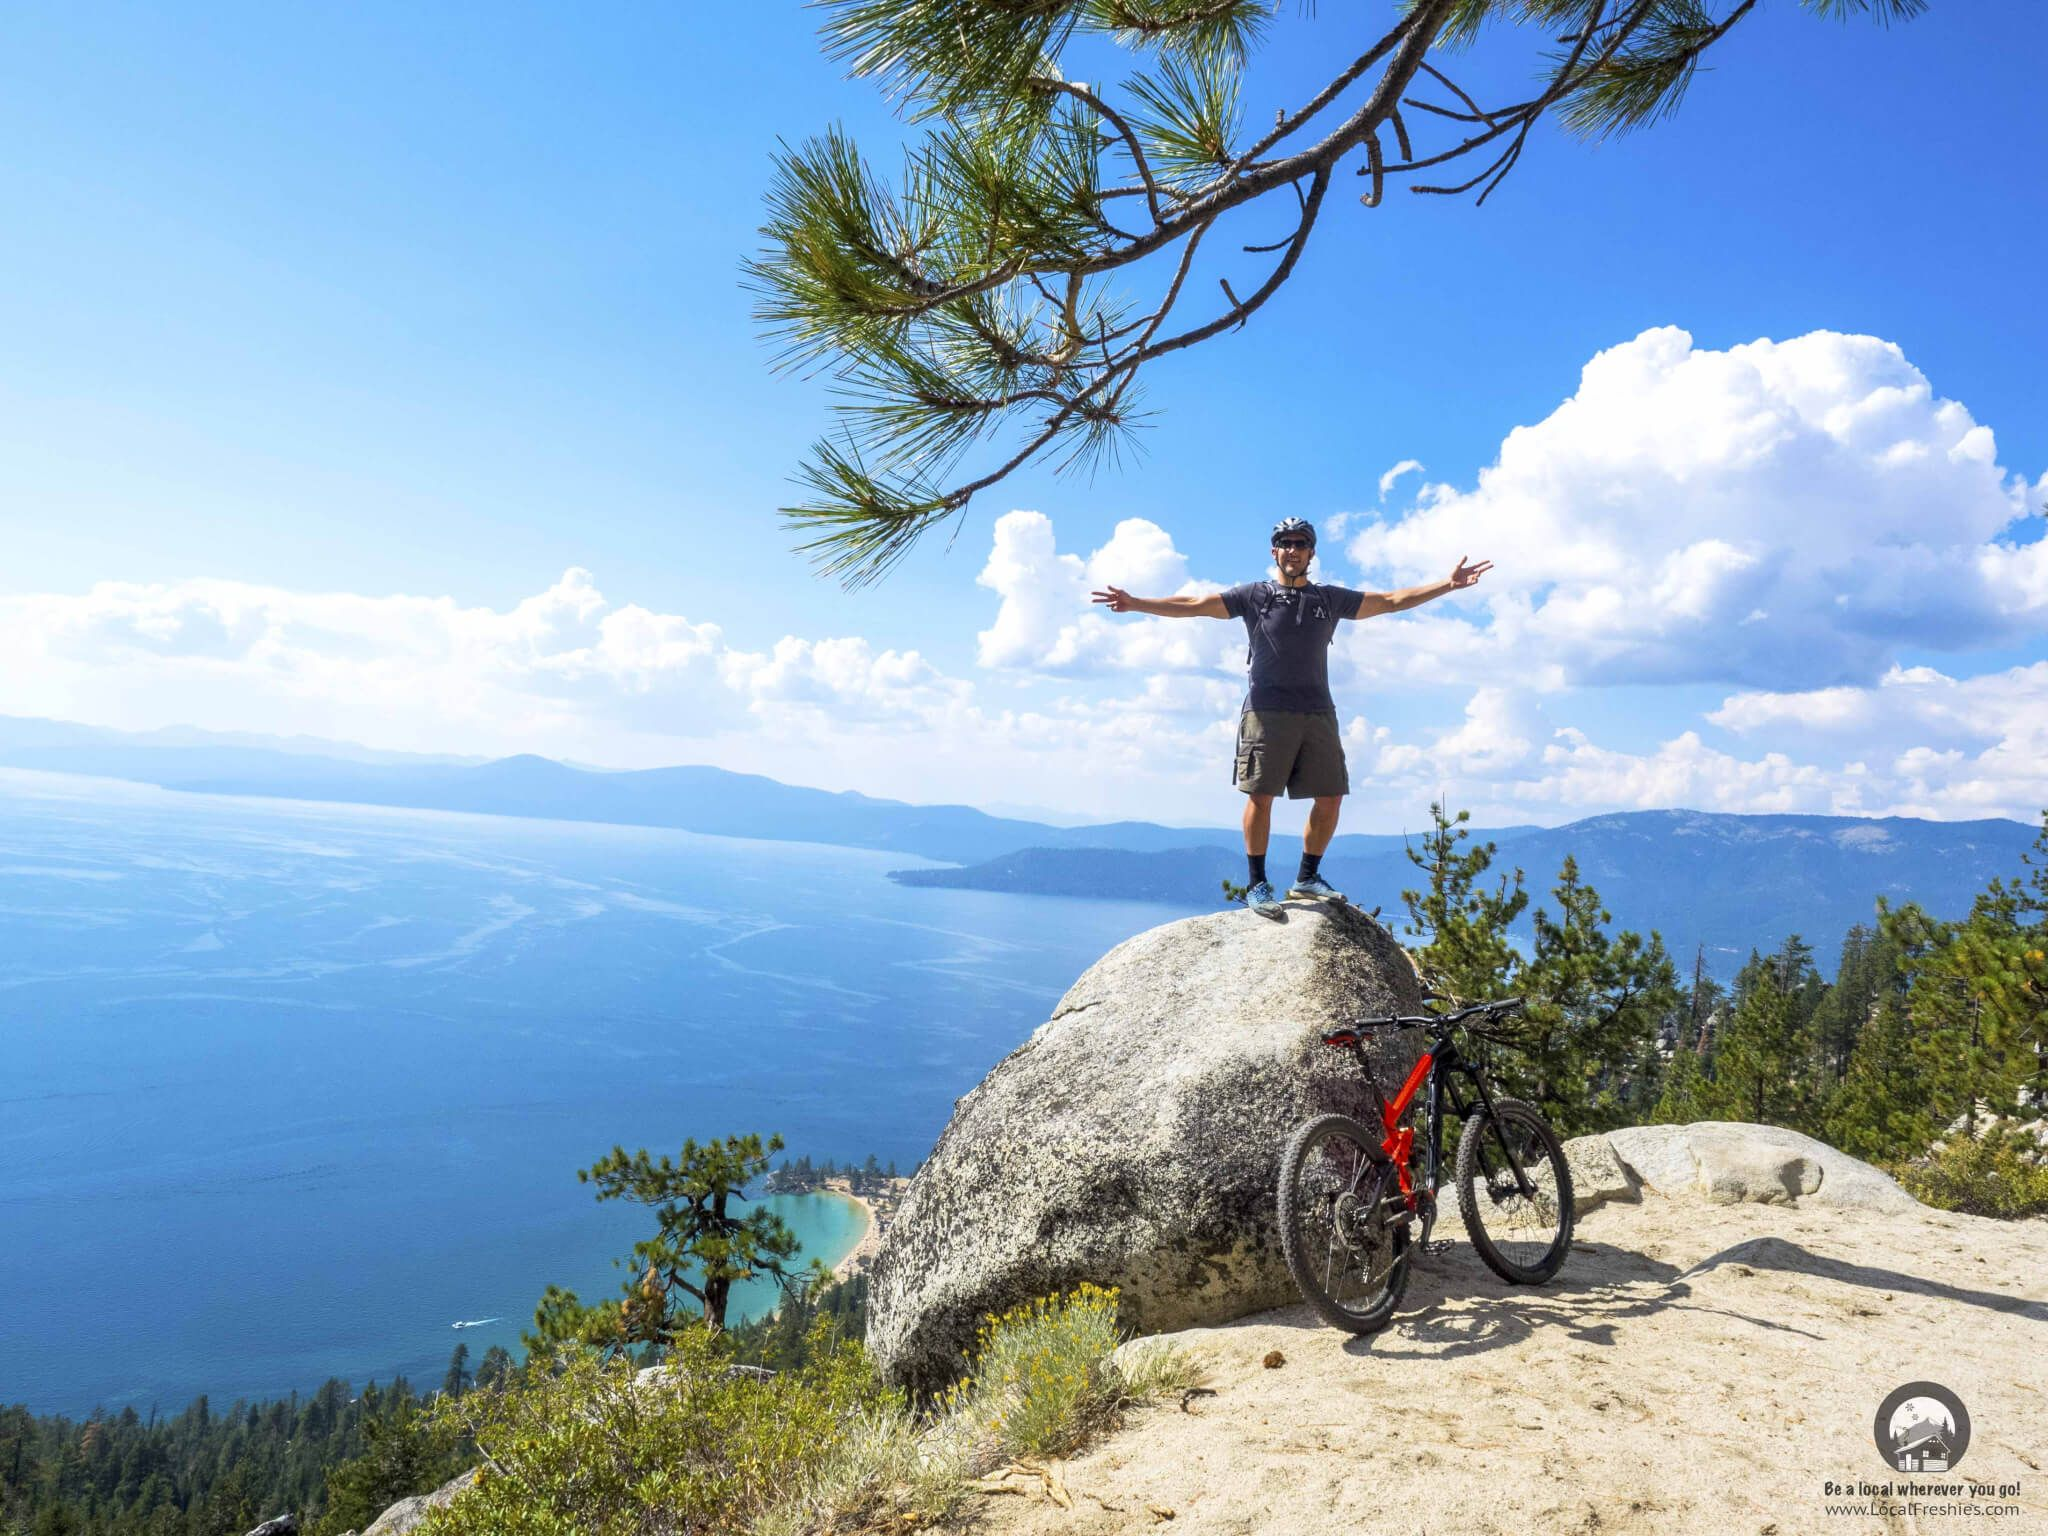 You'll never beat the views from the Flume Trail. We've created the following Lake Tahoe Mountain Bike Trail Guide to give you a taste of what's available to shred (of the dirt kind).    #mountainbiking #mtblaketahoe #laketahoemtb #mountainlife #biking #cycling